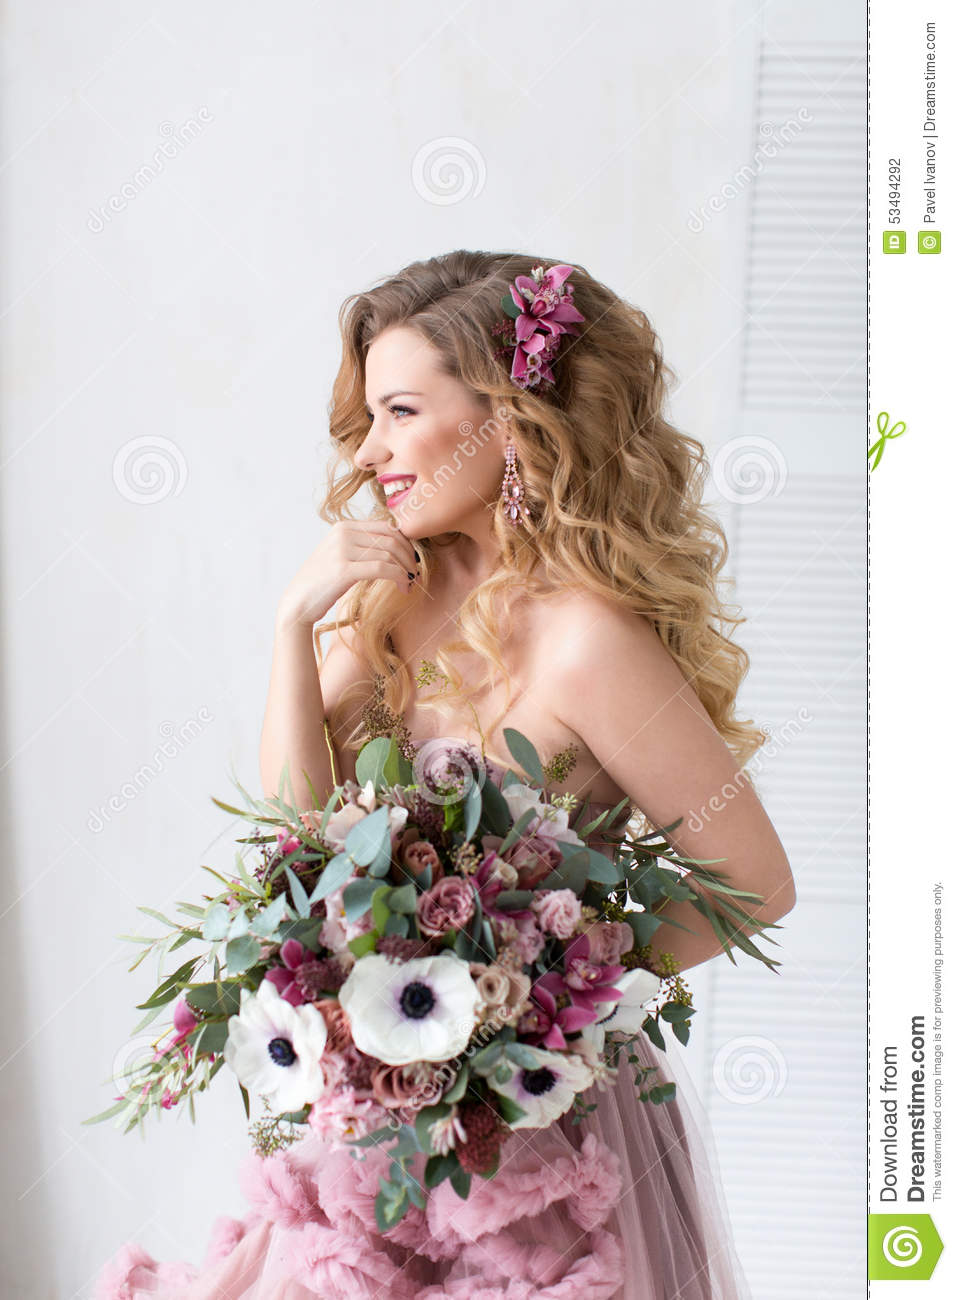 Beautiful Woman With A Bouquet Of Flowers In A Pink Dress